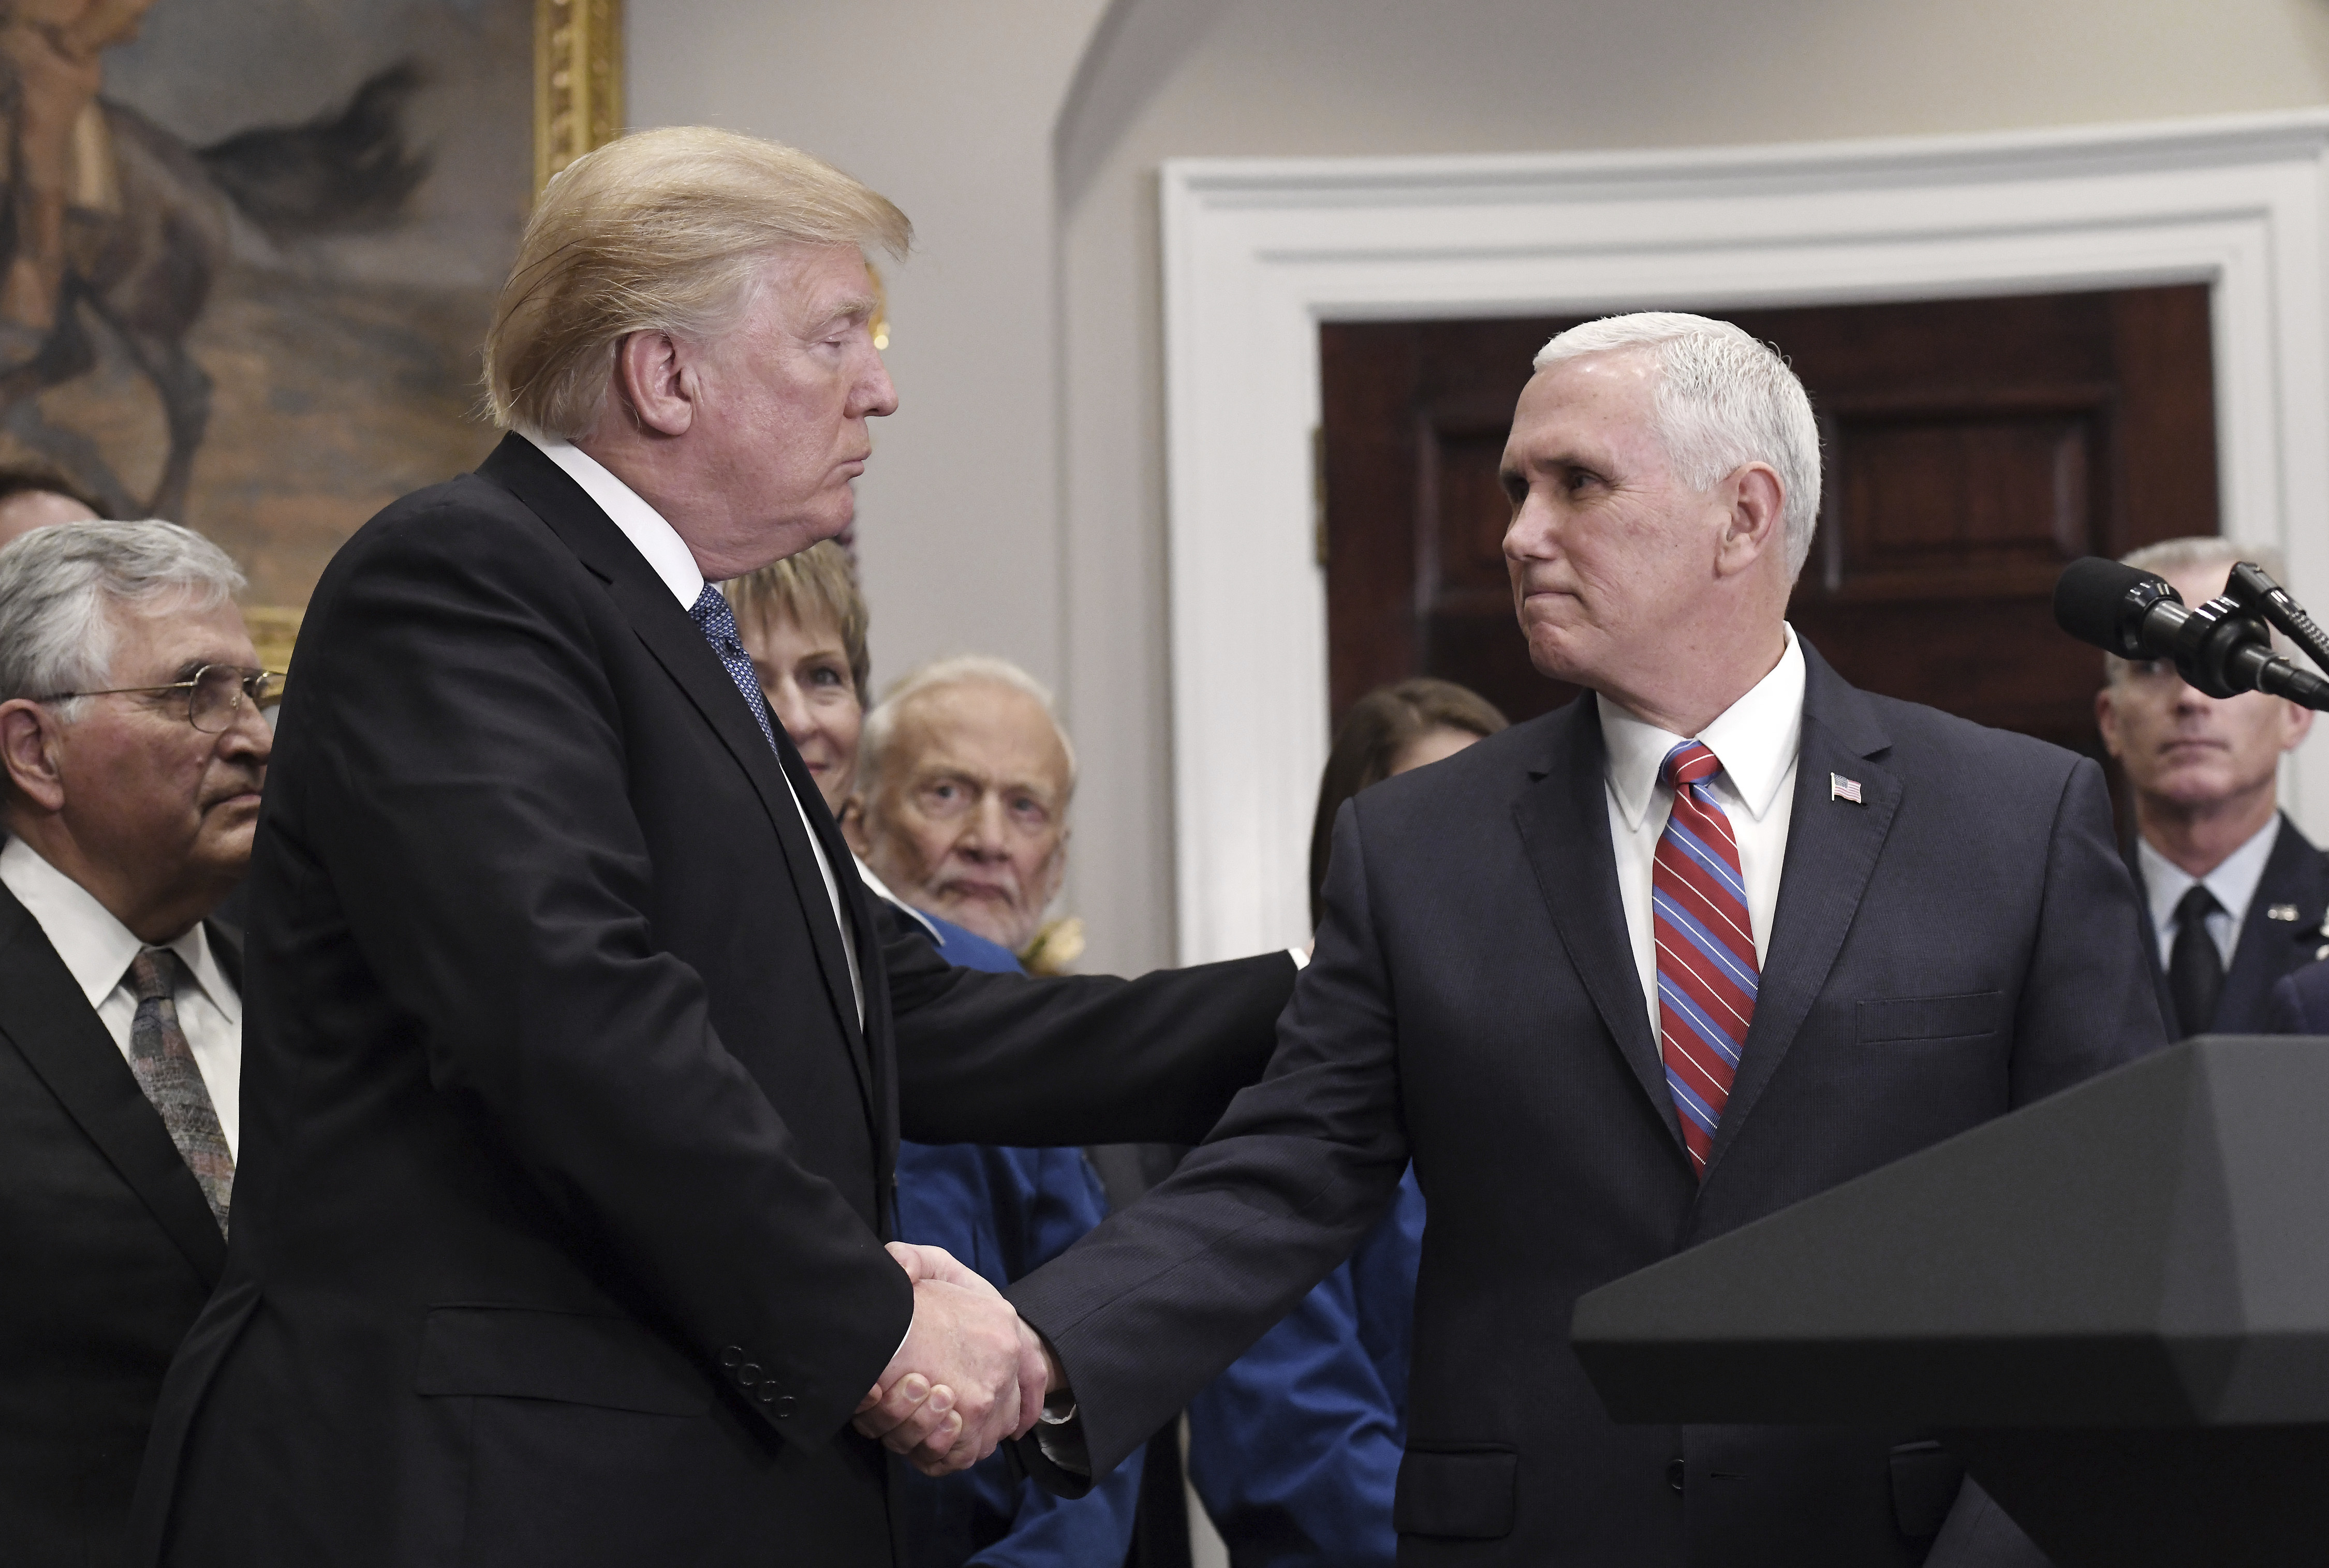 President Trump and VP Mike Pence at the White House on Dec. 11, 2017 in Washington, DC